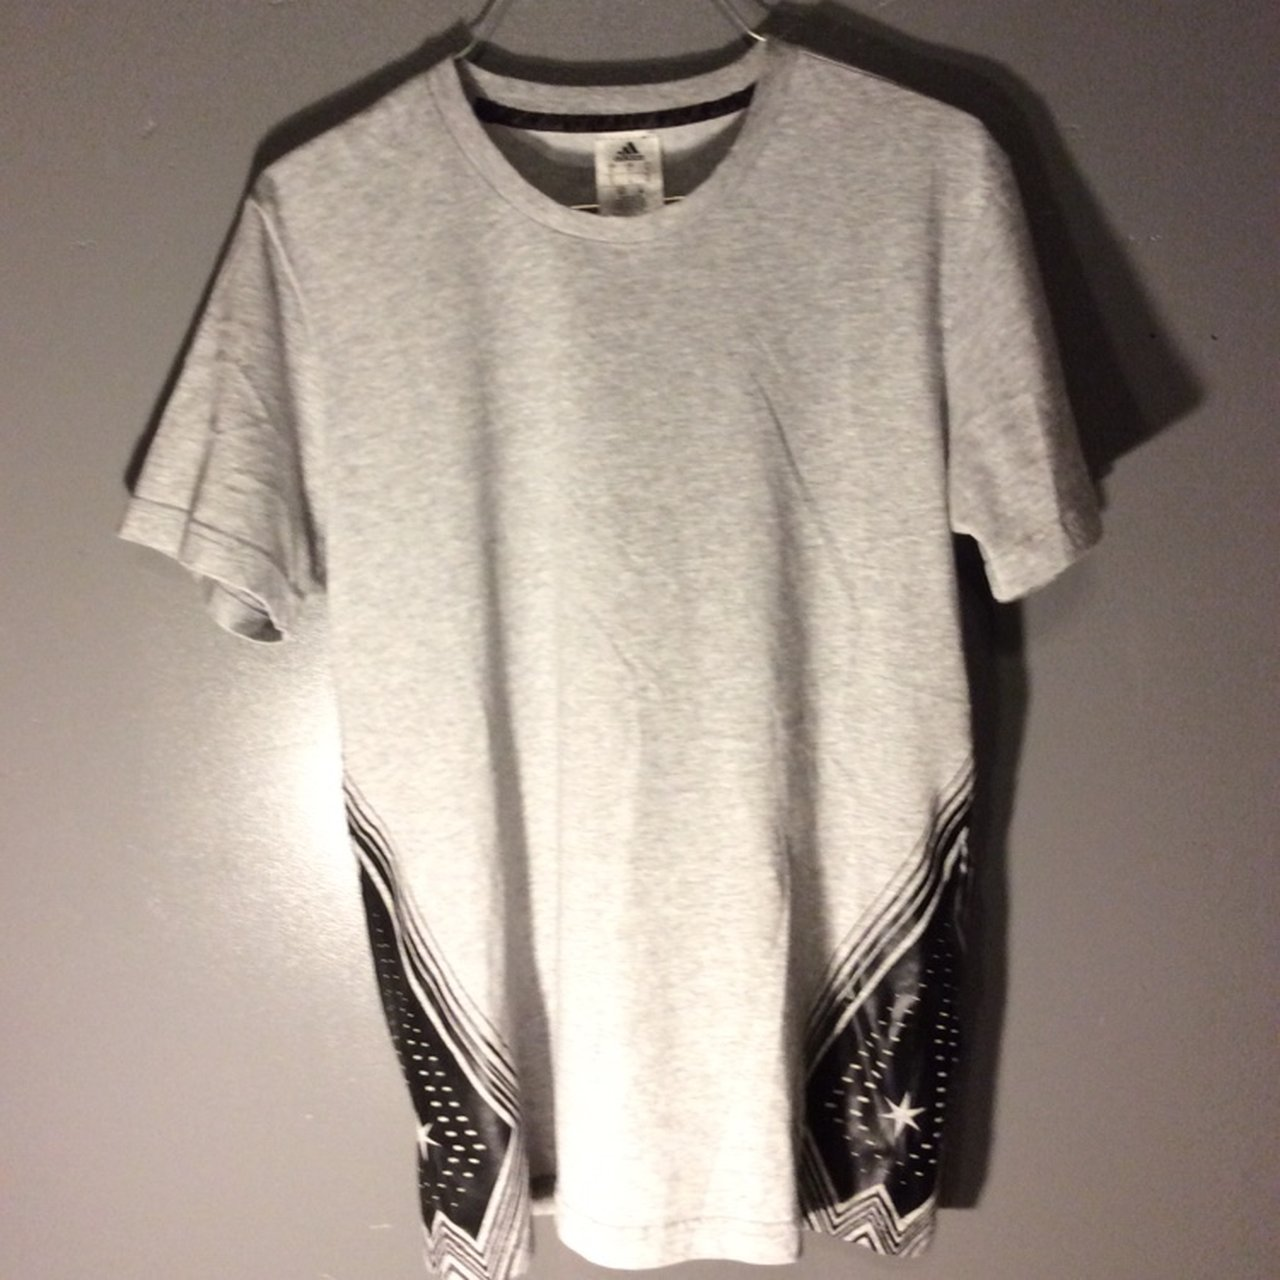 946a53e91c3a Adidas T-shirt Great condition Size~S Color~Grey Brand~Adidas